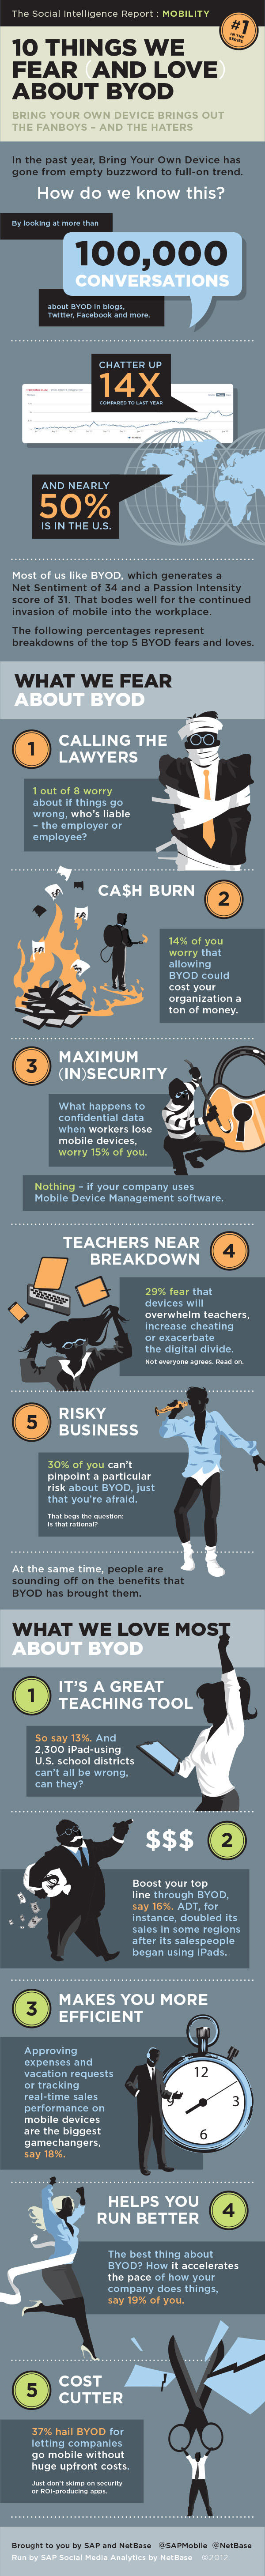 5 Dangers And Benefits Of BYOD